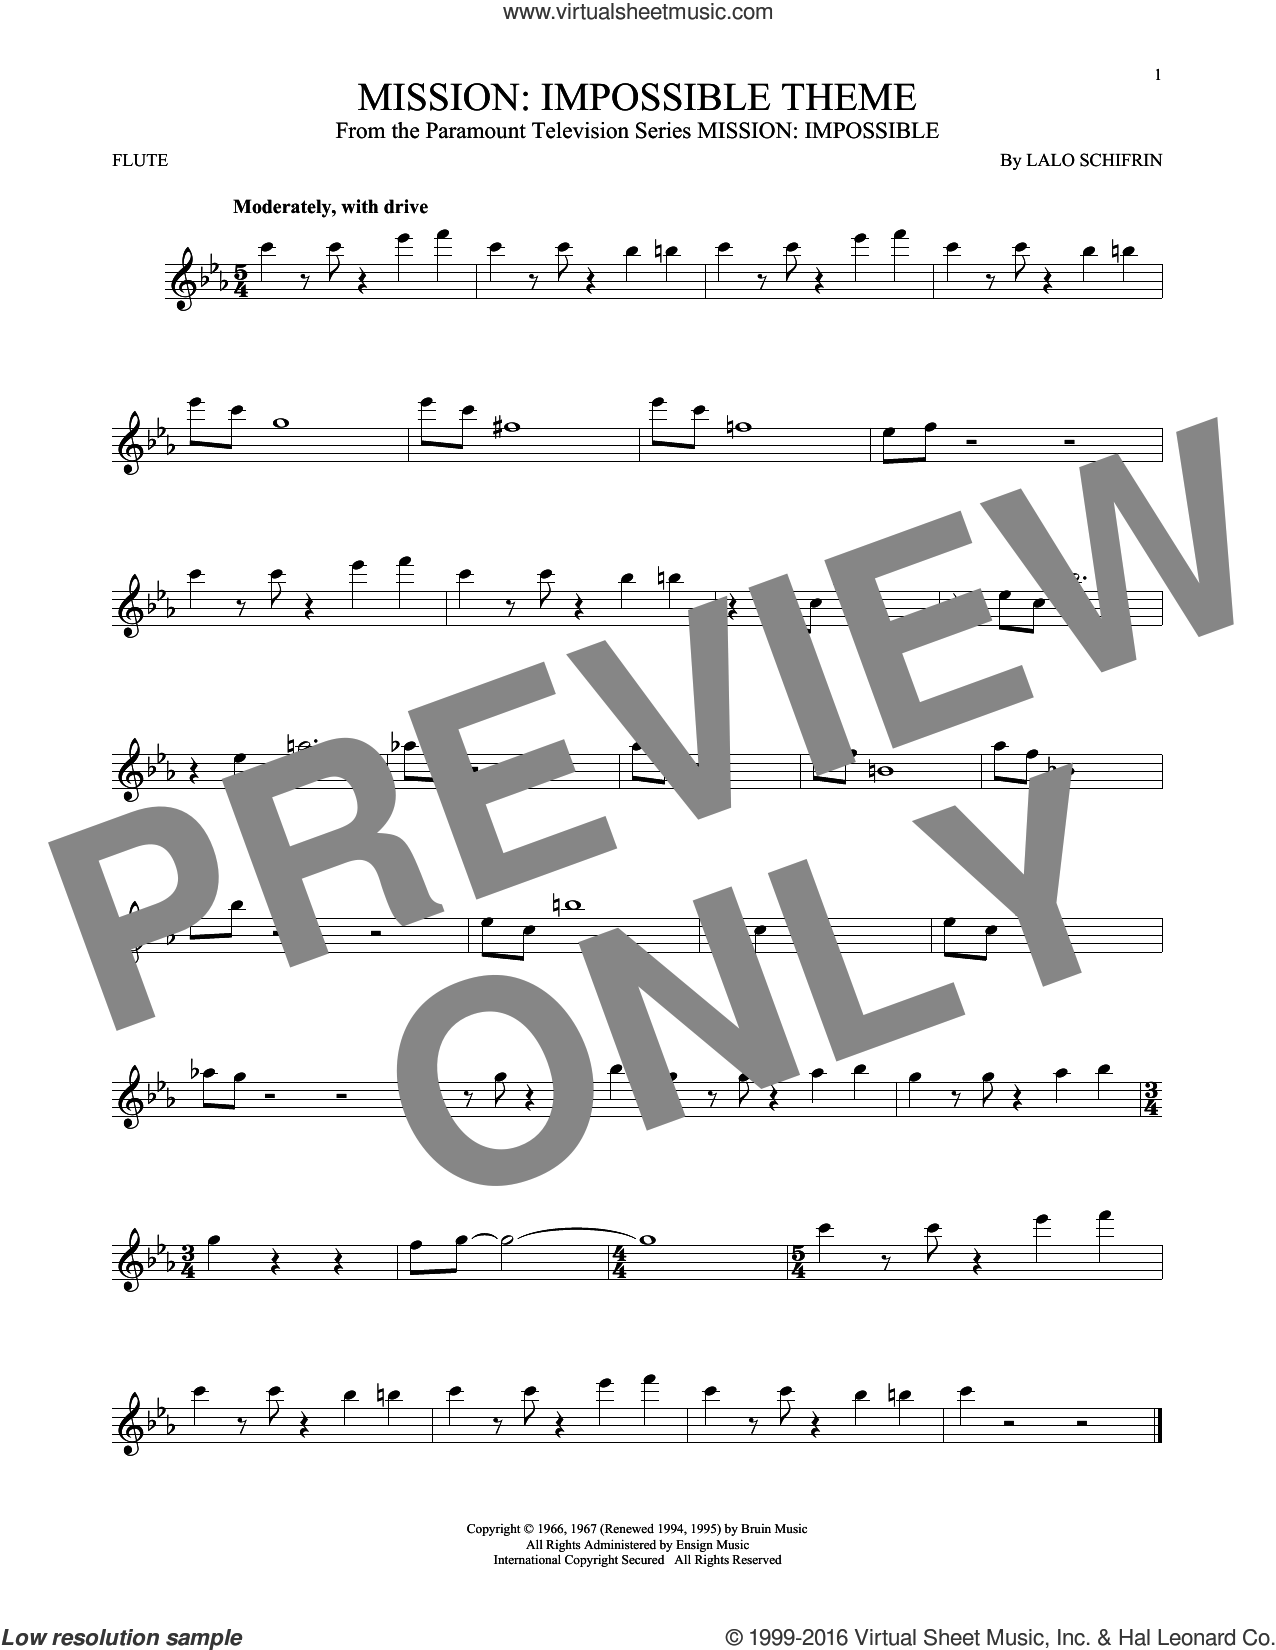 Mission: Impossible Theme sheet music for flute solo by Lalo Schifrin. Score Image Preview.